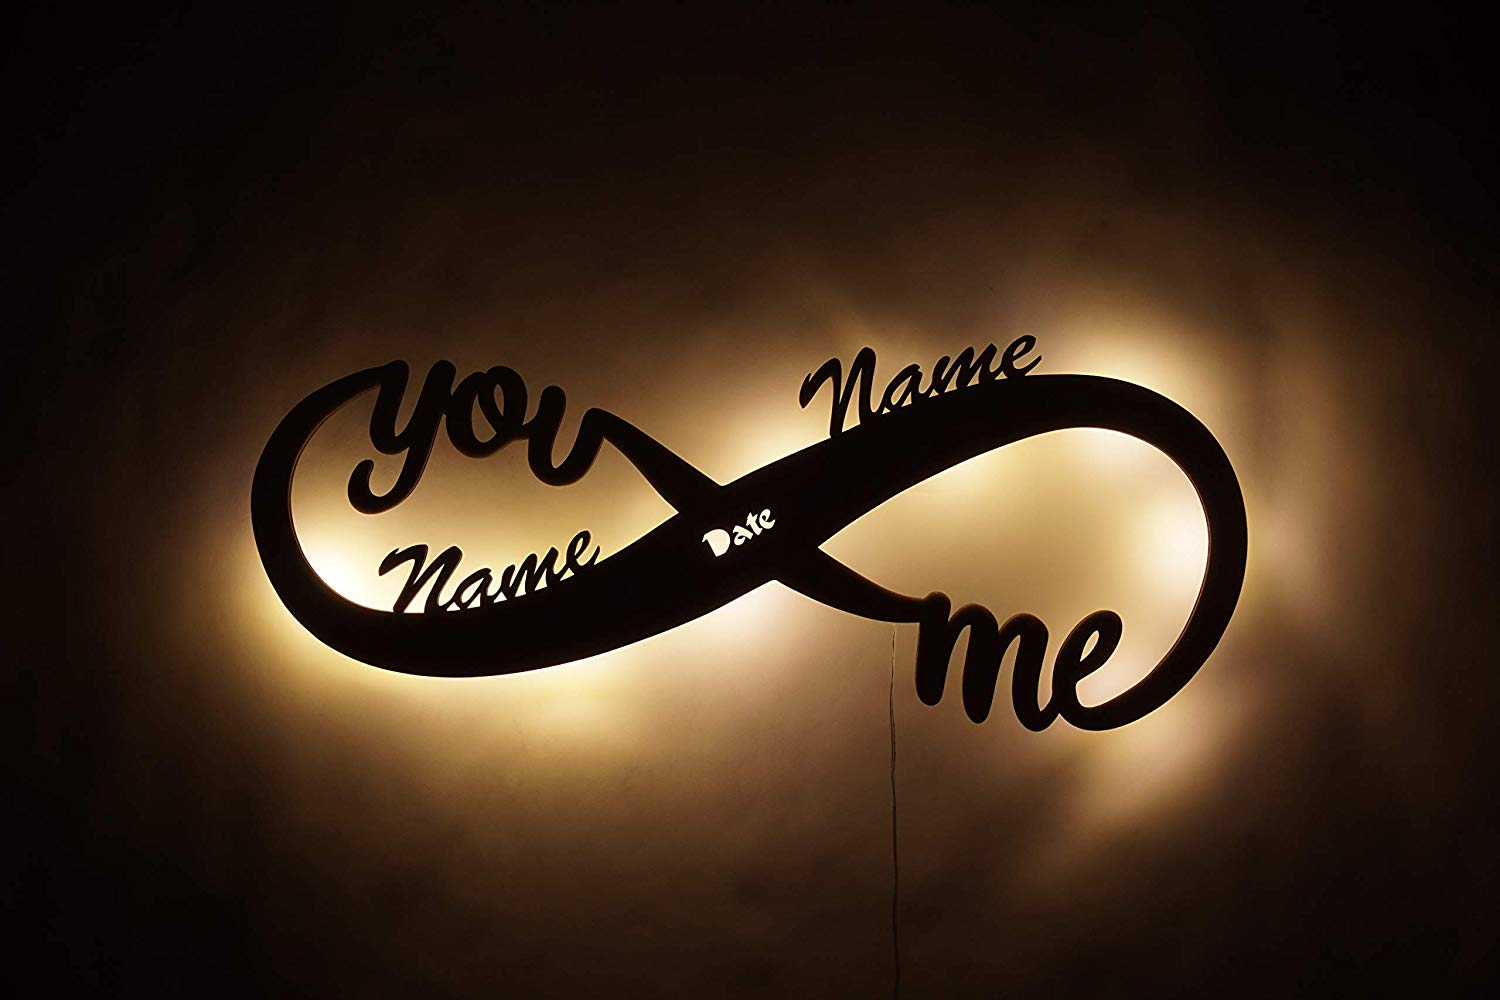 Infinity I Love You Decor LED Night Light Romantic Gifts for Men Wife Couples him and her Boyfriend Girlfriend Personalized with Both Names Suitable for Anniversary Wedding Marriage Engagement